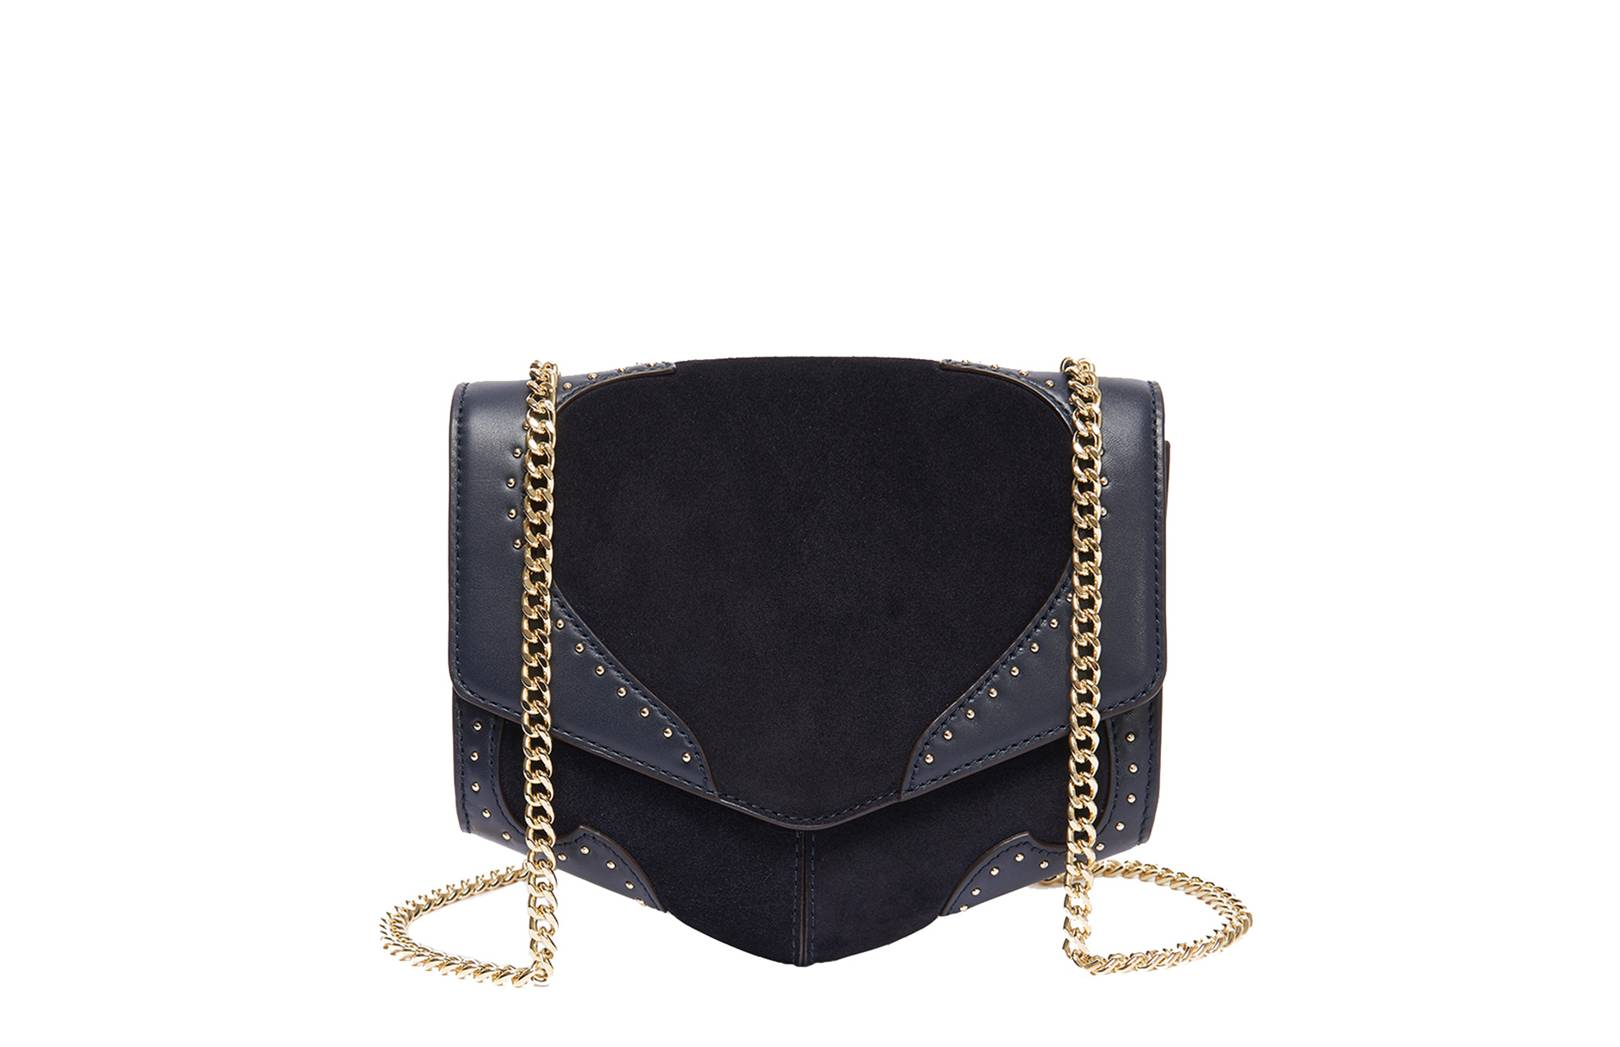 dbe118508914 12 Best Small Handbags To Buy Now